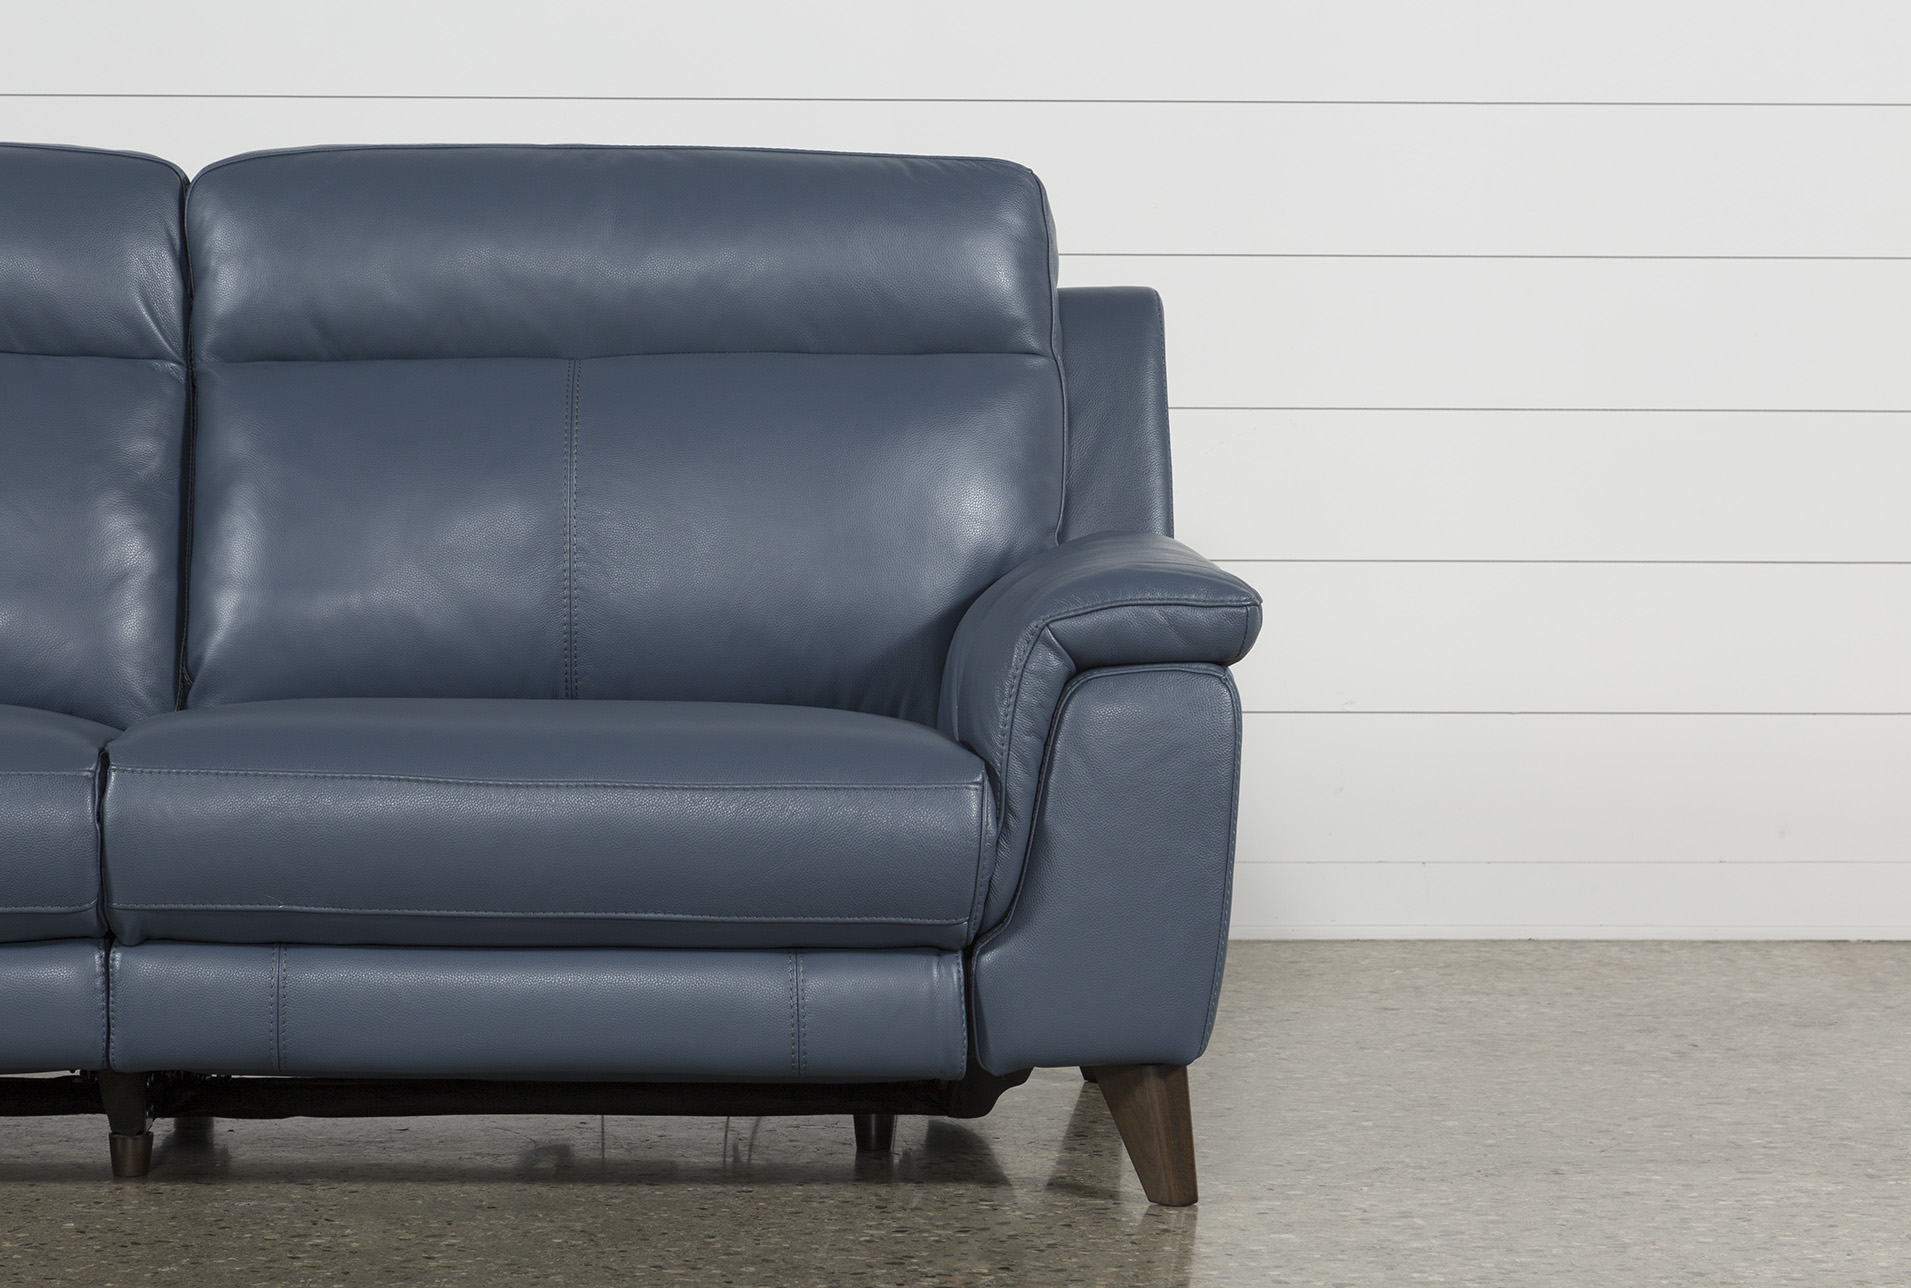 Wondrous Moana Blue Leather Dual Power Reclining Sofa With Usb Dailytribune Chair Design For Home Dailytribuneorg